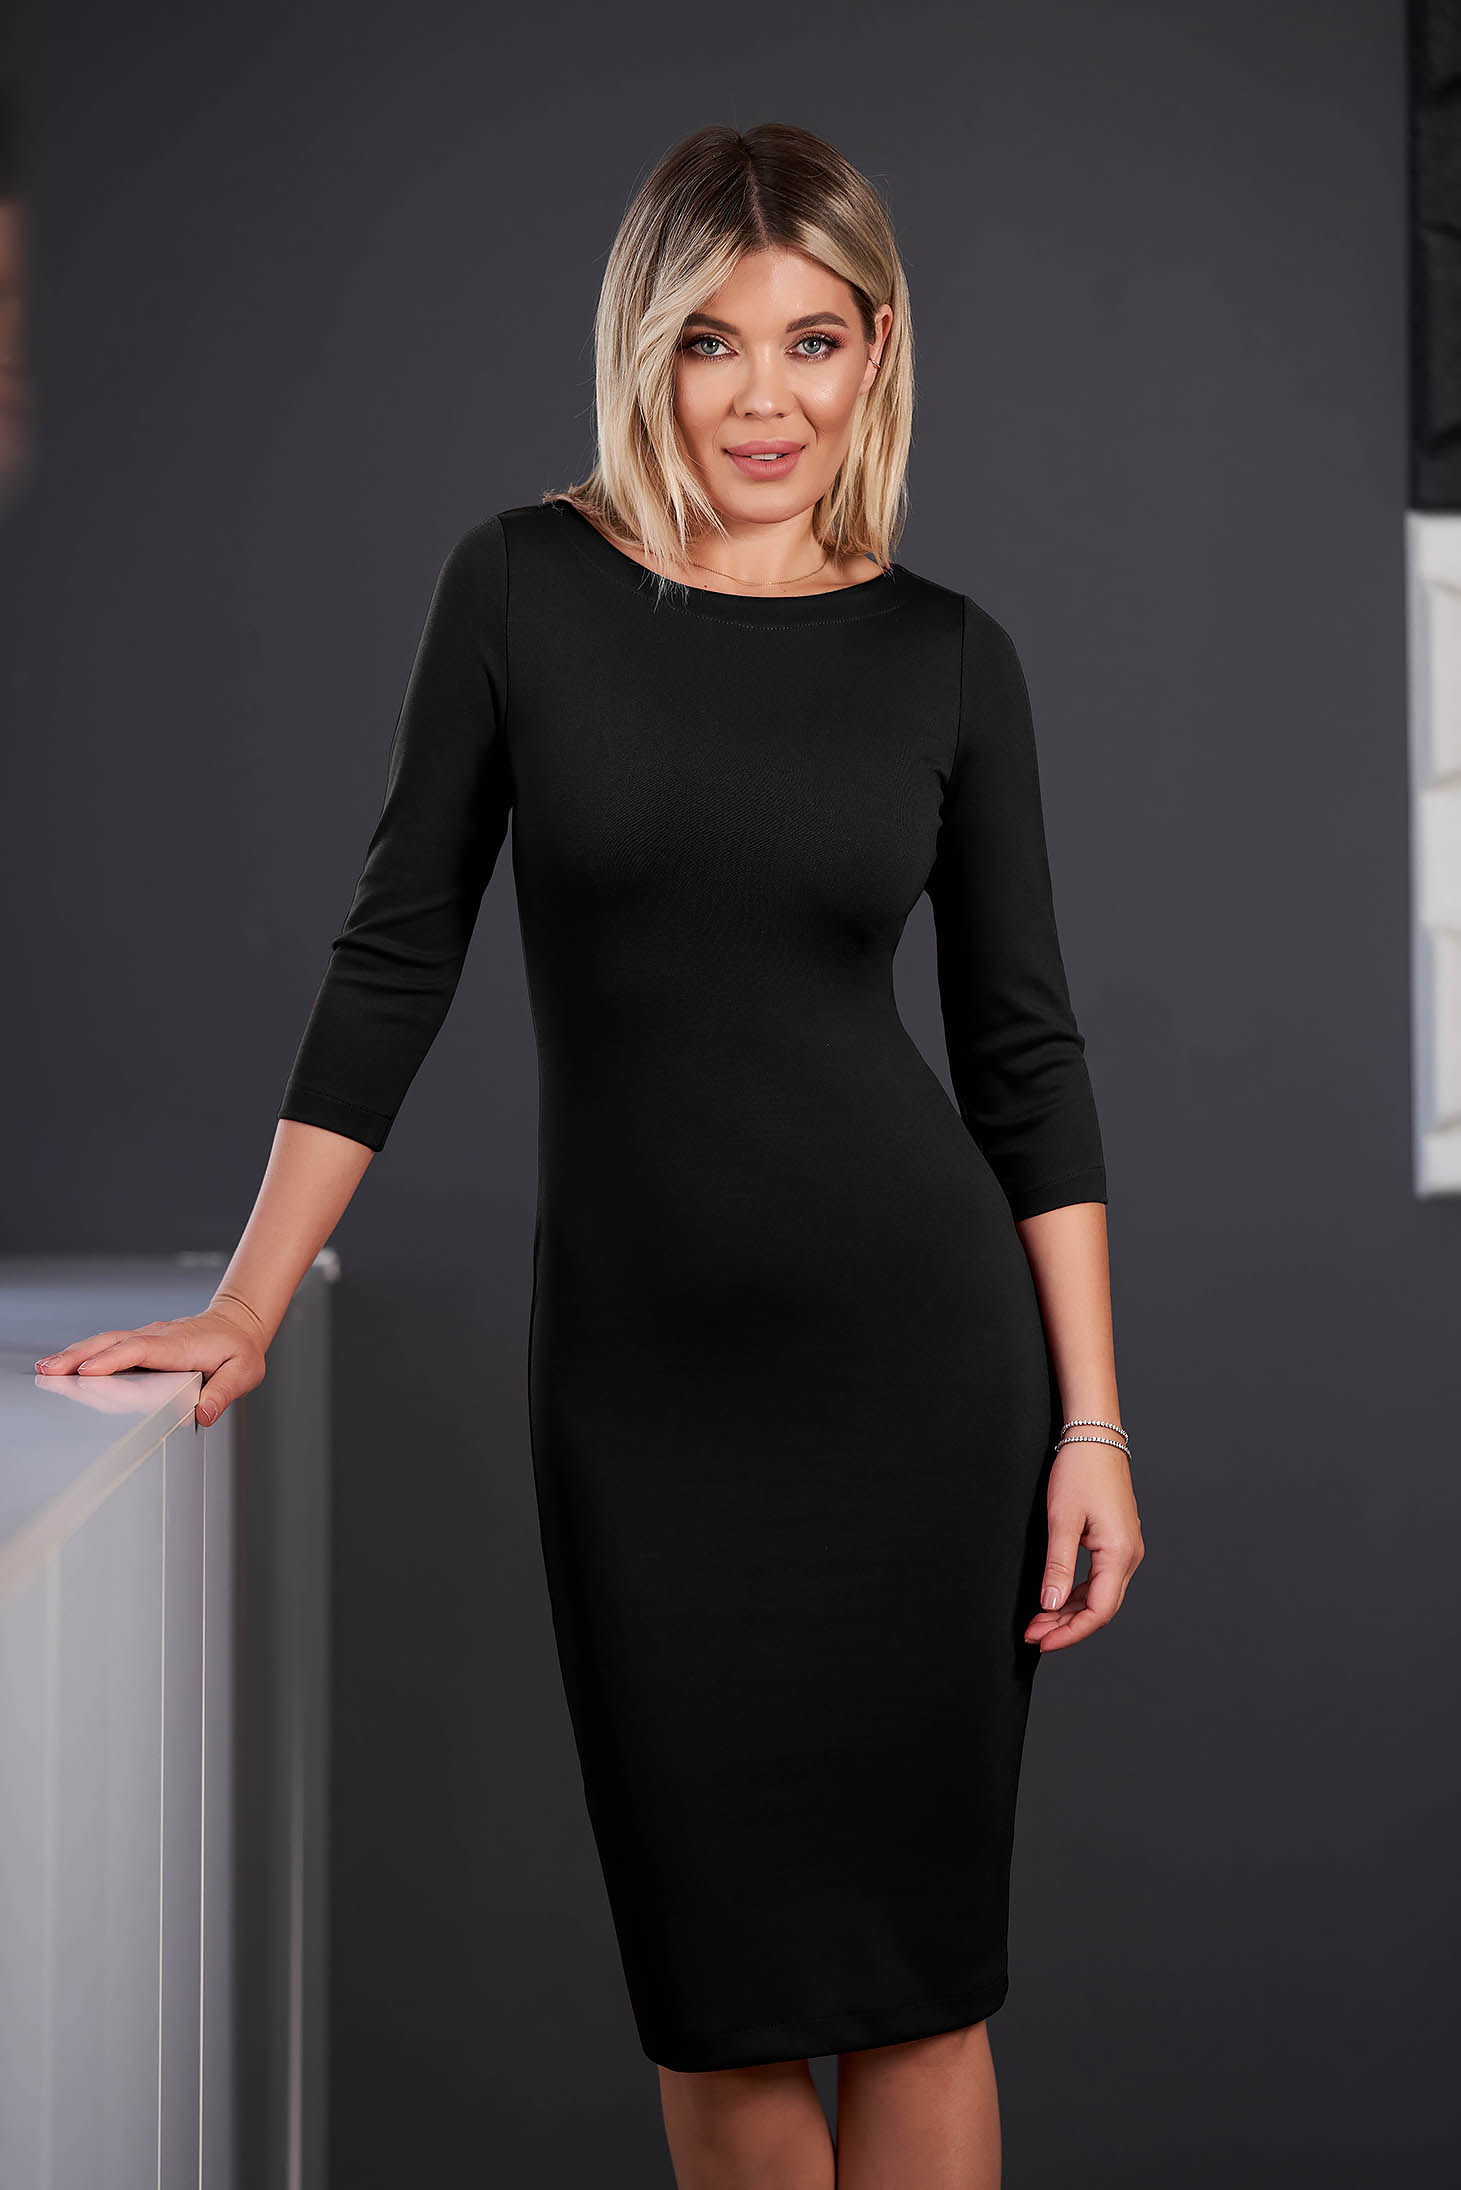 Rochie StarShinerS neagra office midi tip creion din material elastic